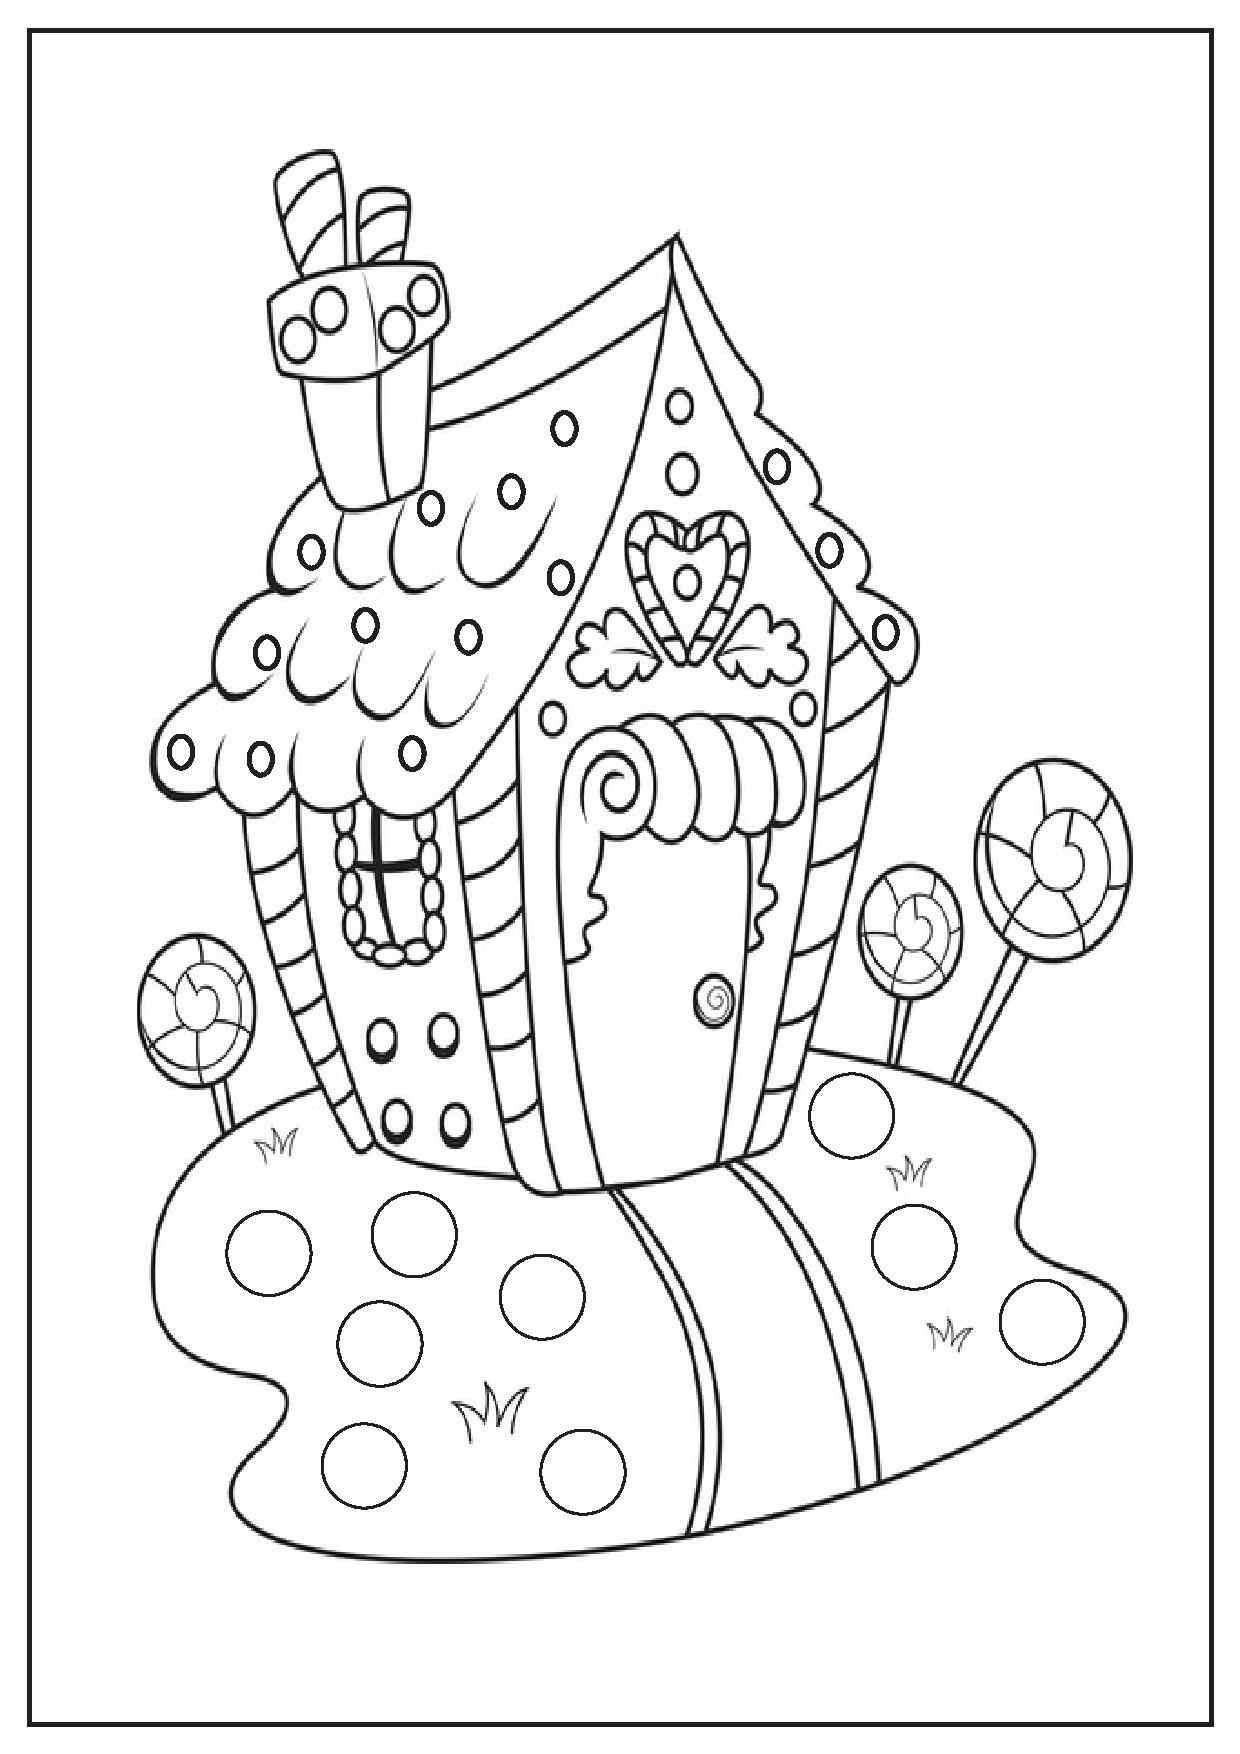 Colouring on worksheets - Kindergarten Coloring Sheets Only Coloring Pages Coloring